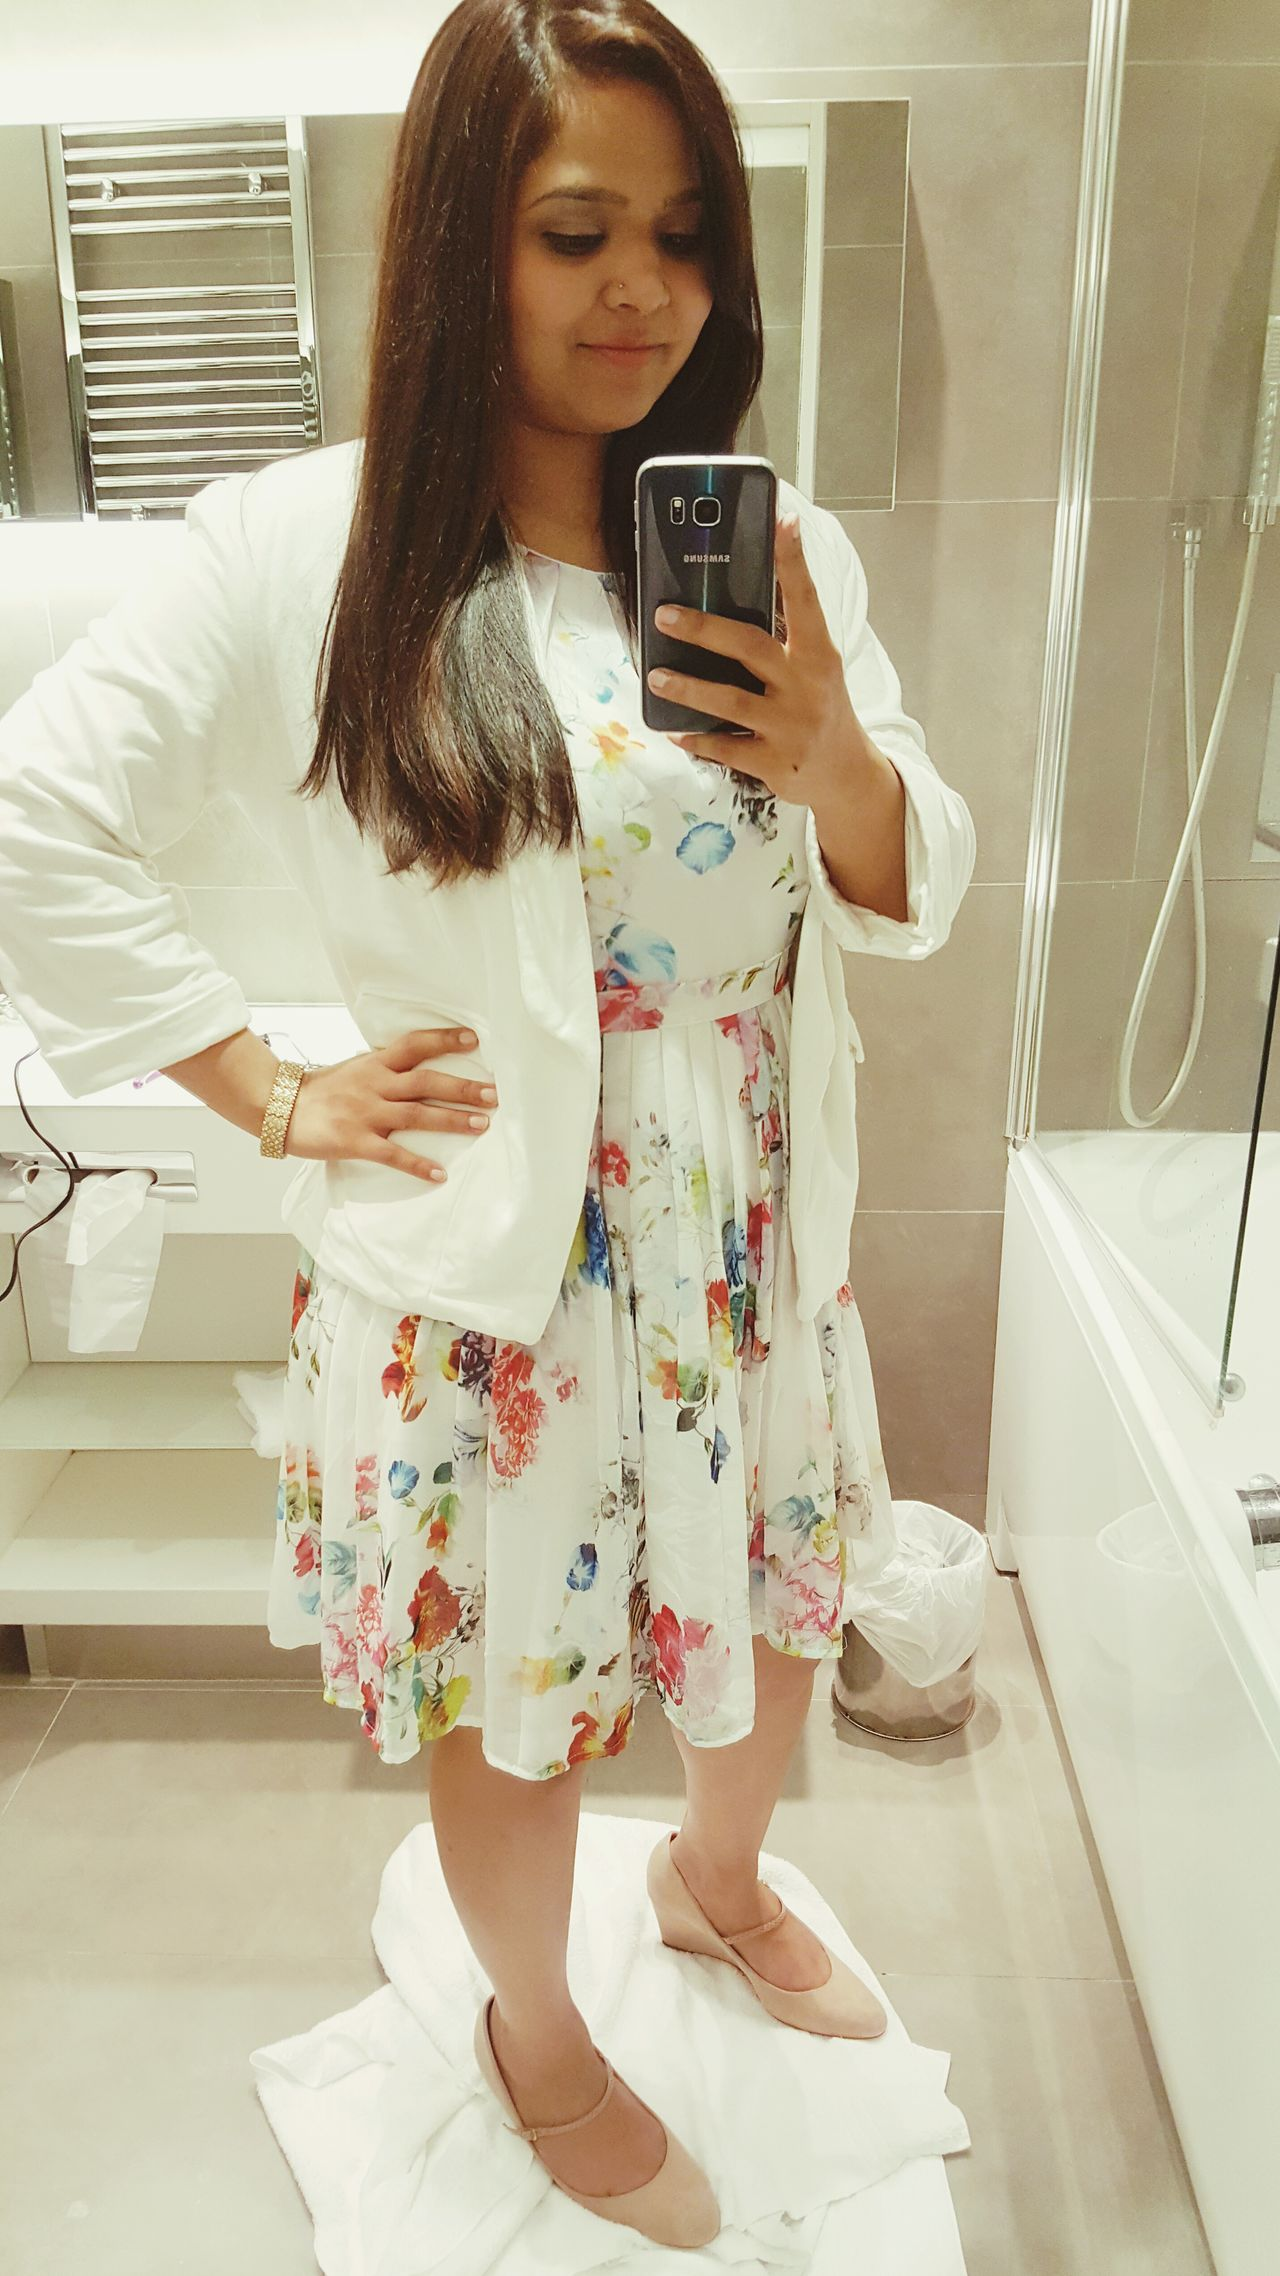 Oct 2016 Paris Day 2 Samsungphotography Selfie Samsung Galaxy S6 Edge Travel Wanderlust Lookoftheday Floral Dress White Lifestyles Photo Messaging Smart Phone Technology Mobile Phone Indoors  People Women One Person